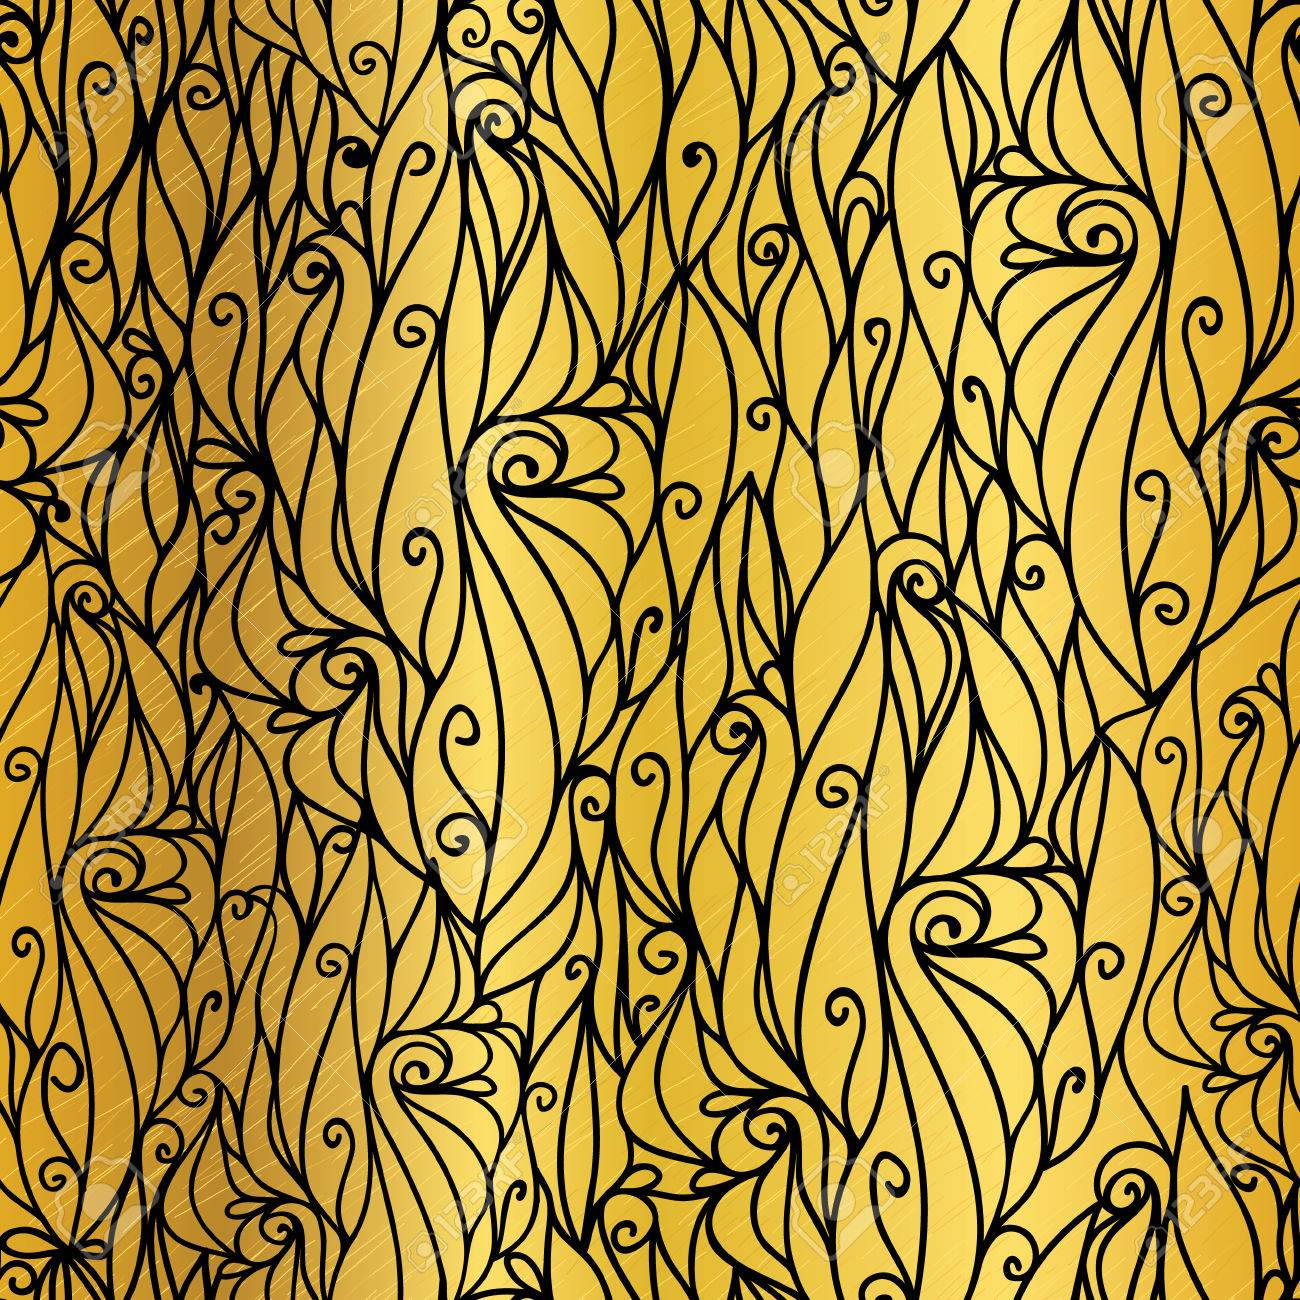 Vector Gold And Black Abstract Scrolls Swirls Seamless Pattern